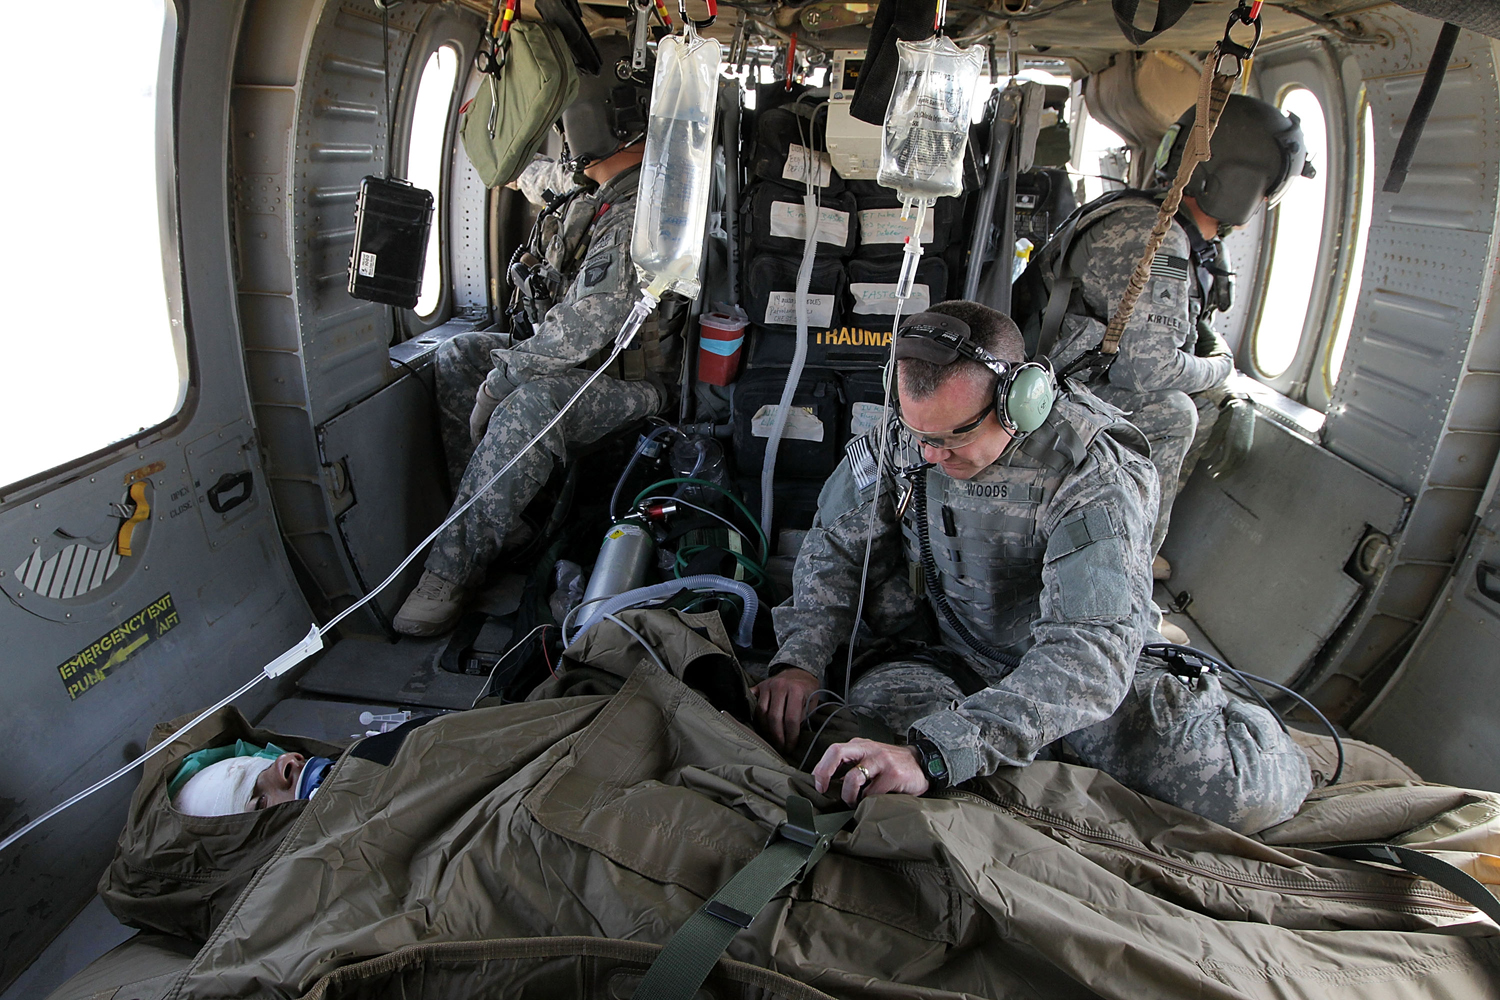 A U.S. Army doctor monitors a patient inside a MEDEVAC helicopter on June 20, 2010, in Kandahar, Afghanistan.